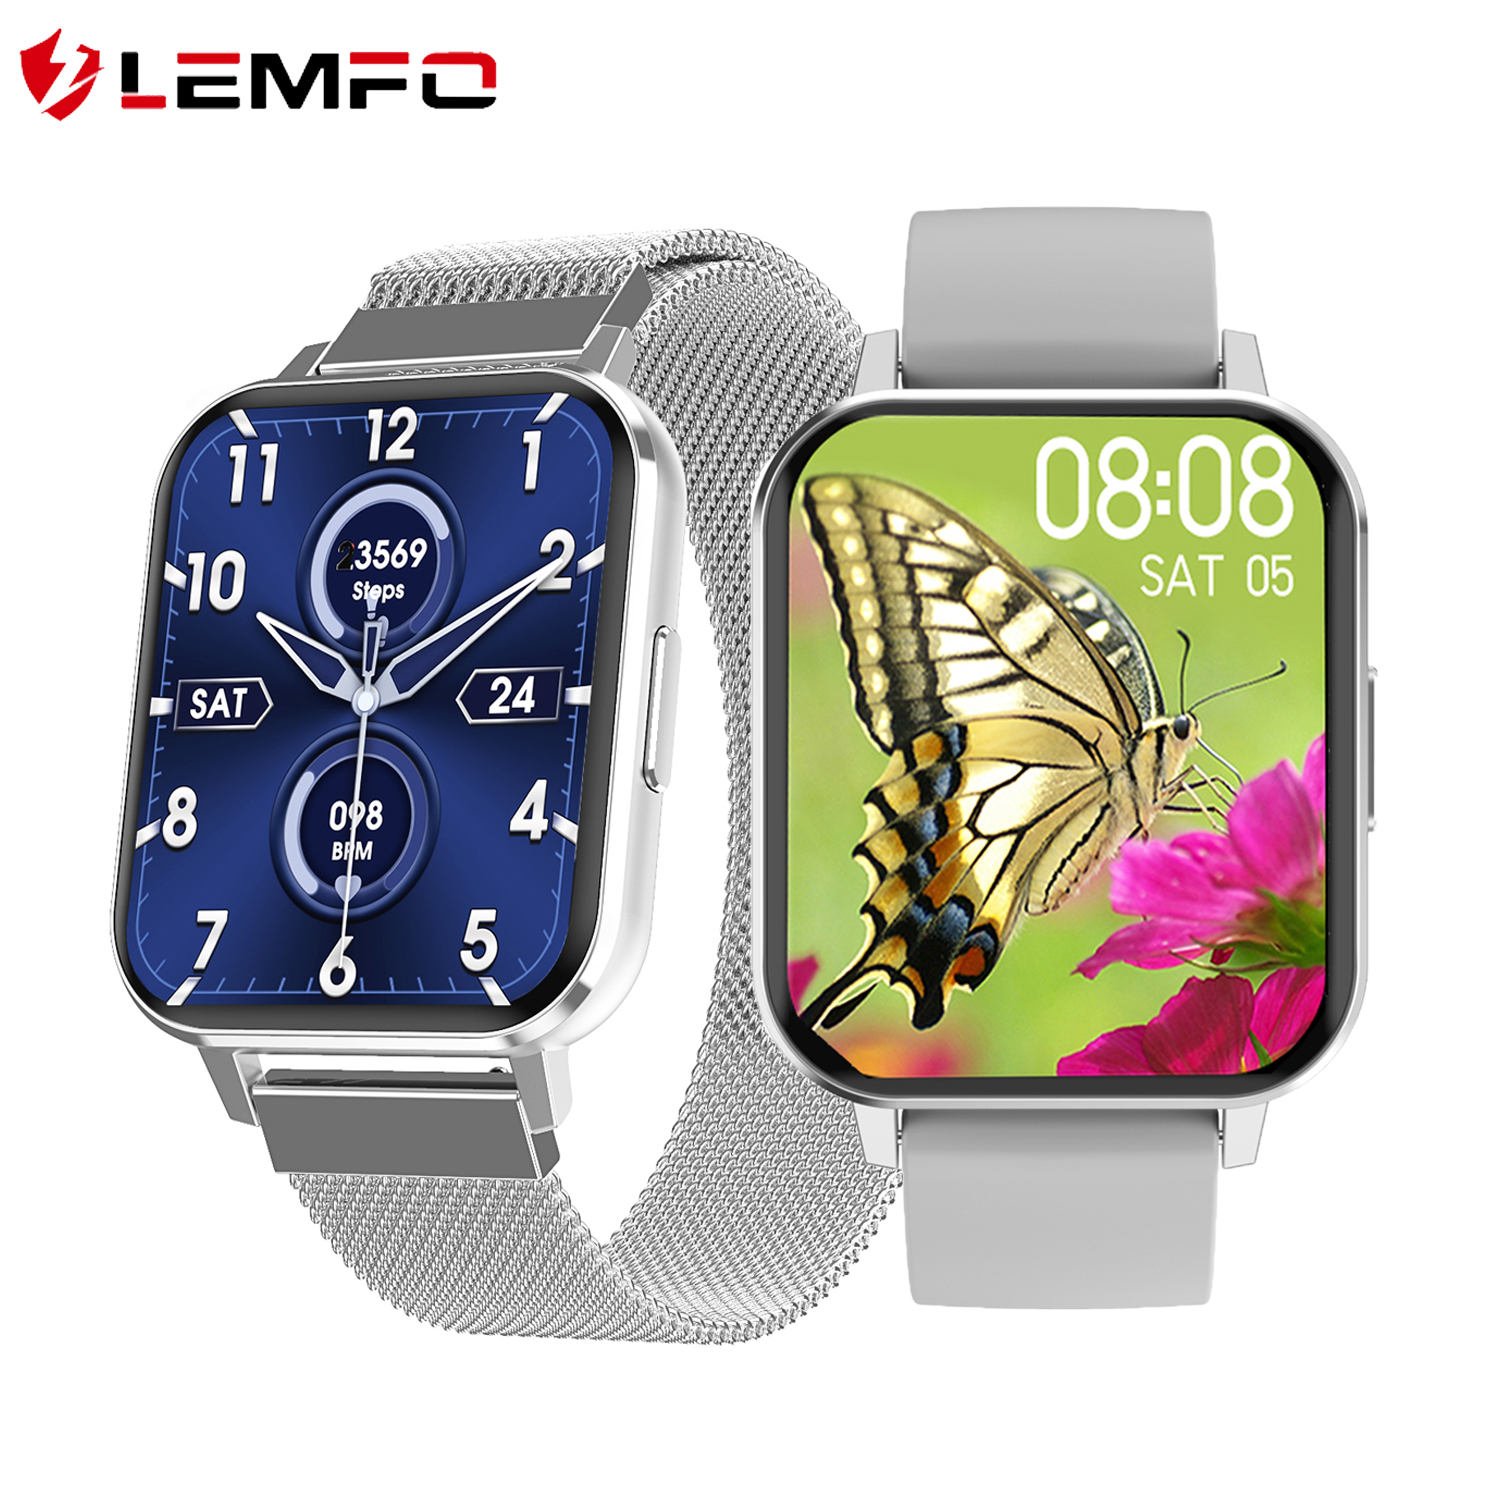 2020 Ultra-thin Alloy Case 1 78 inch Smart watch men custom dial ECG heart rate blood pressure smartwatch for Android ios phone